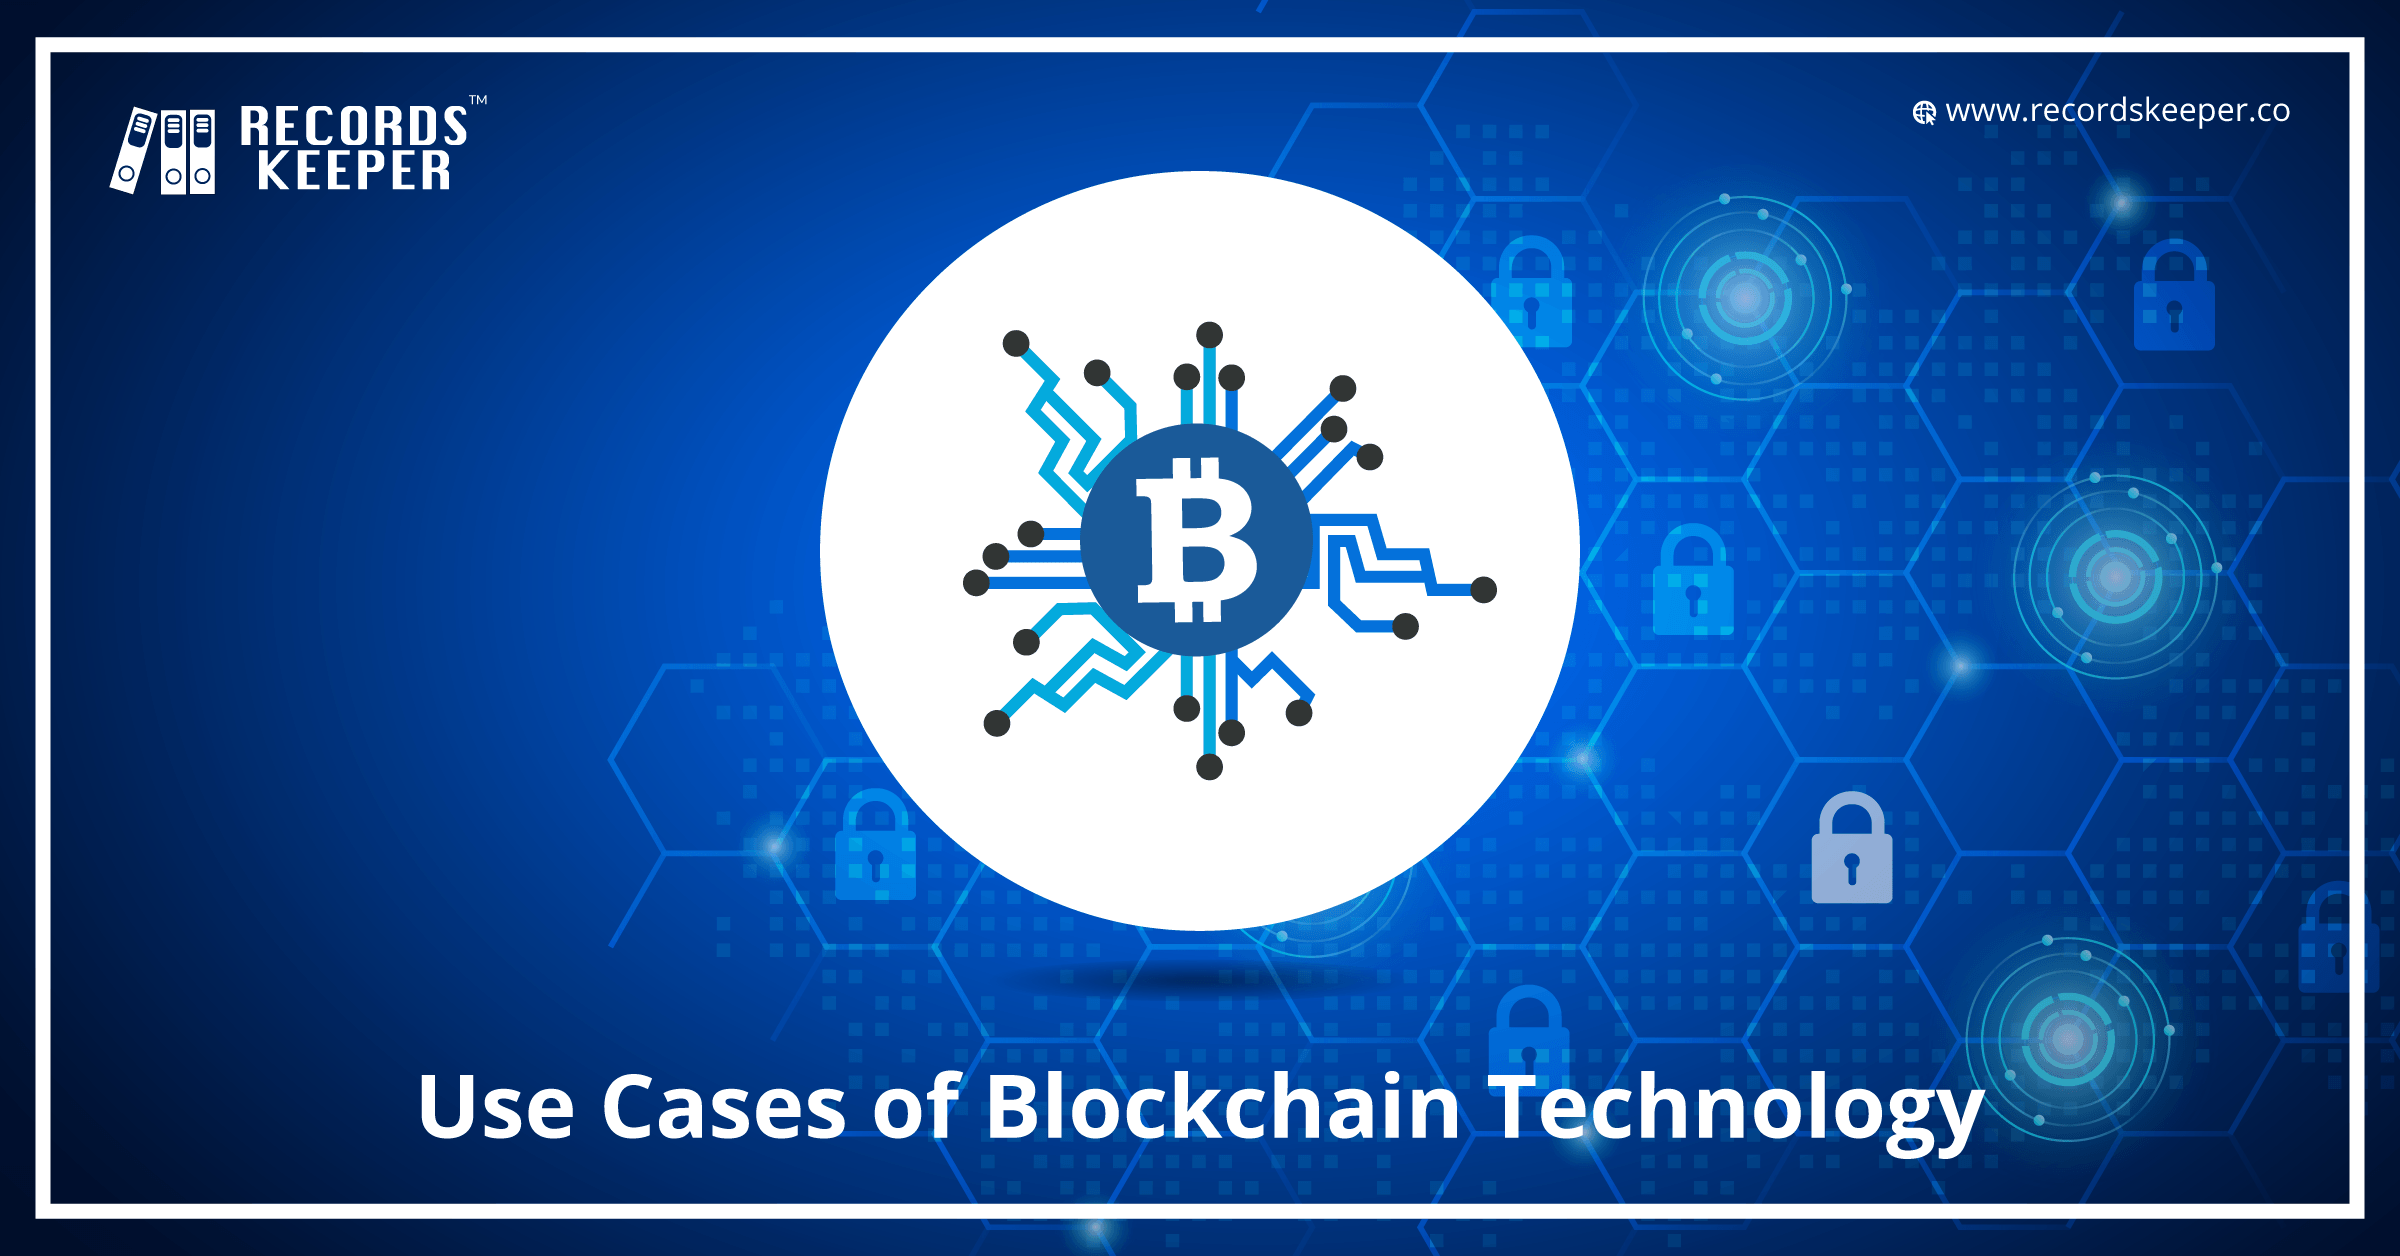 Use Cases of Blockchain Technology